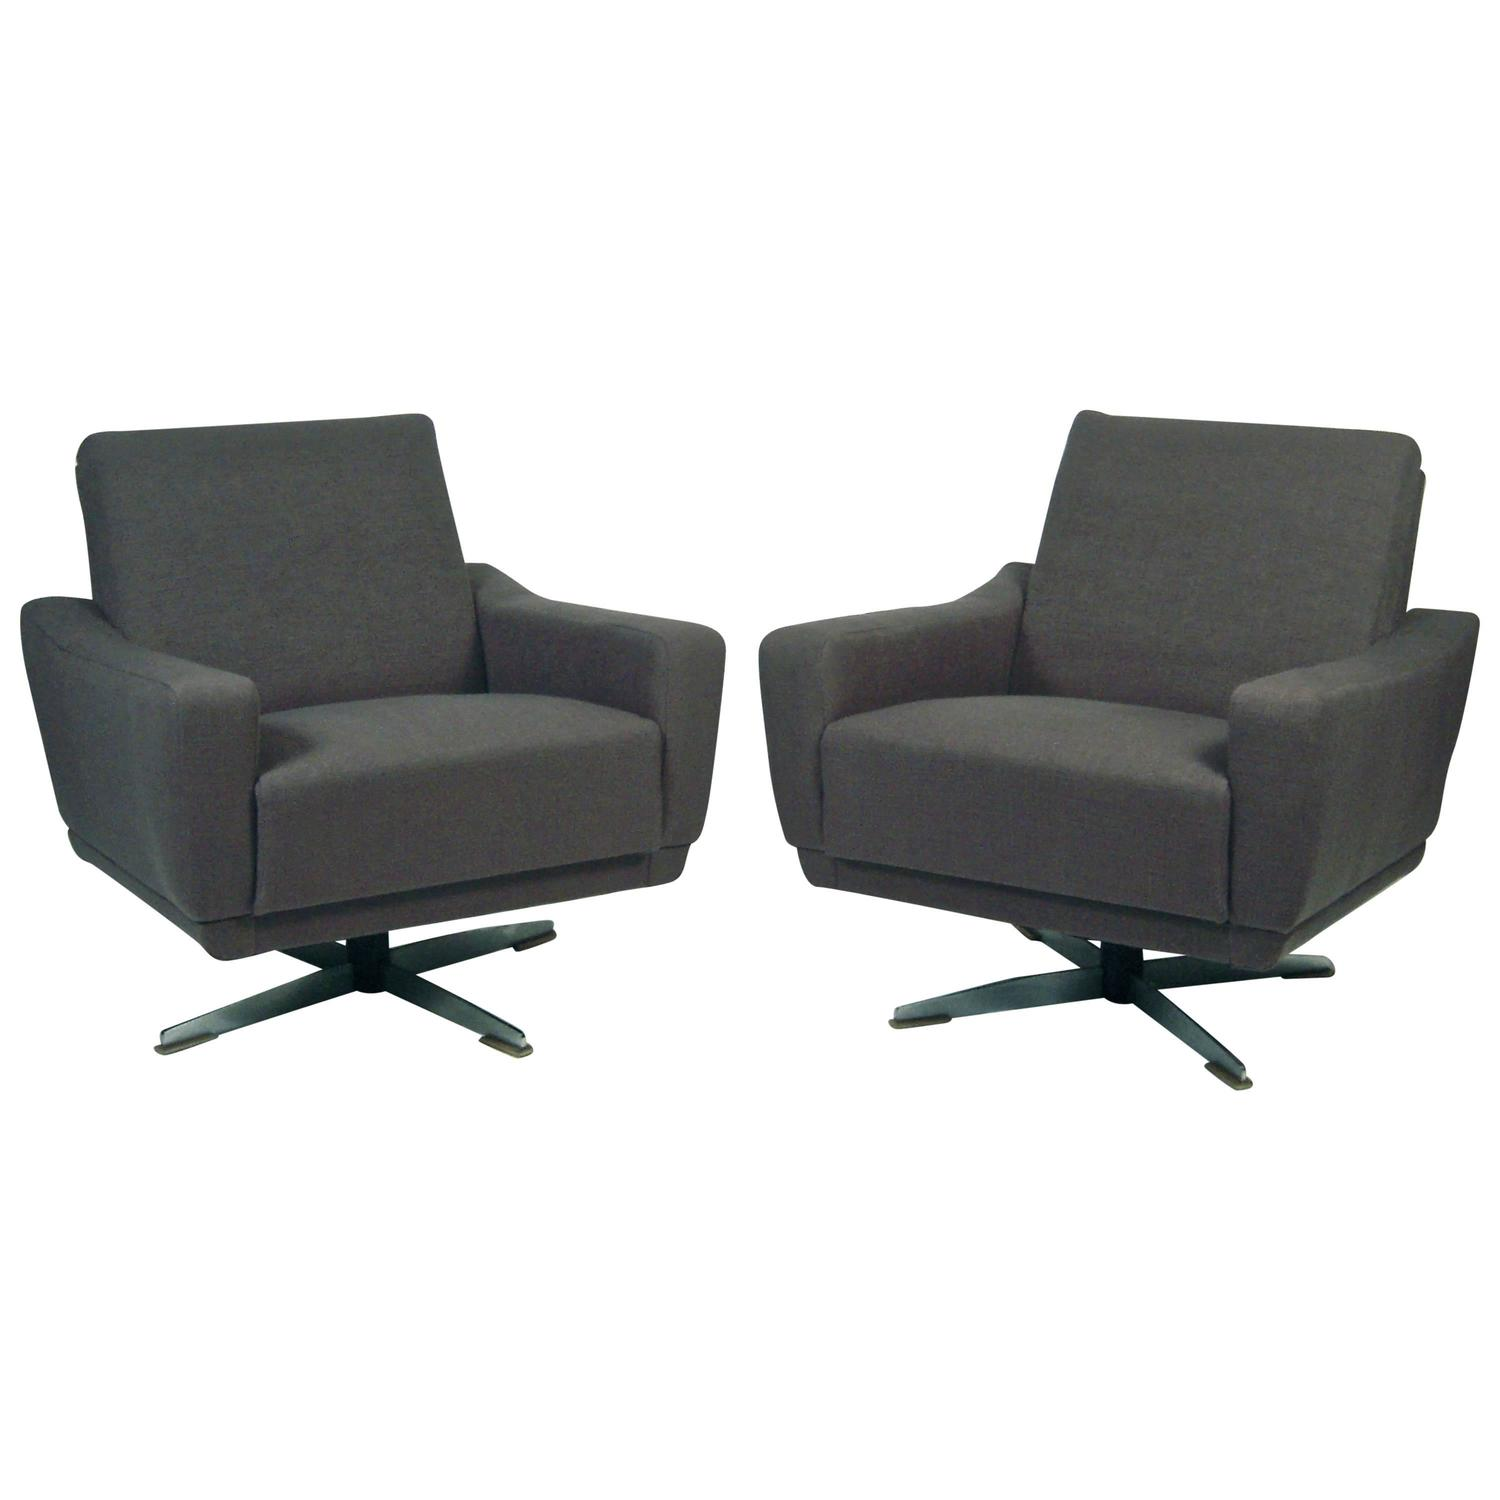 Pair of Unusual and Versatile German Mid Century Modern Swivel